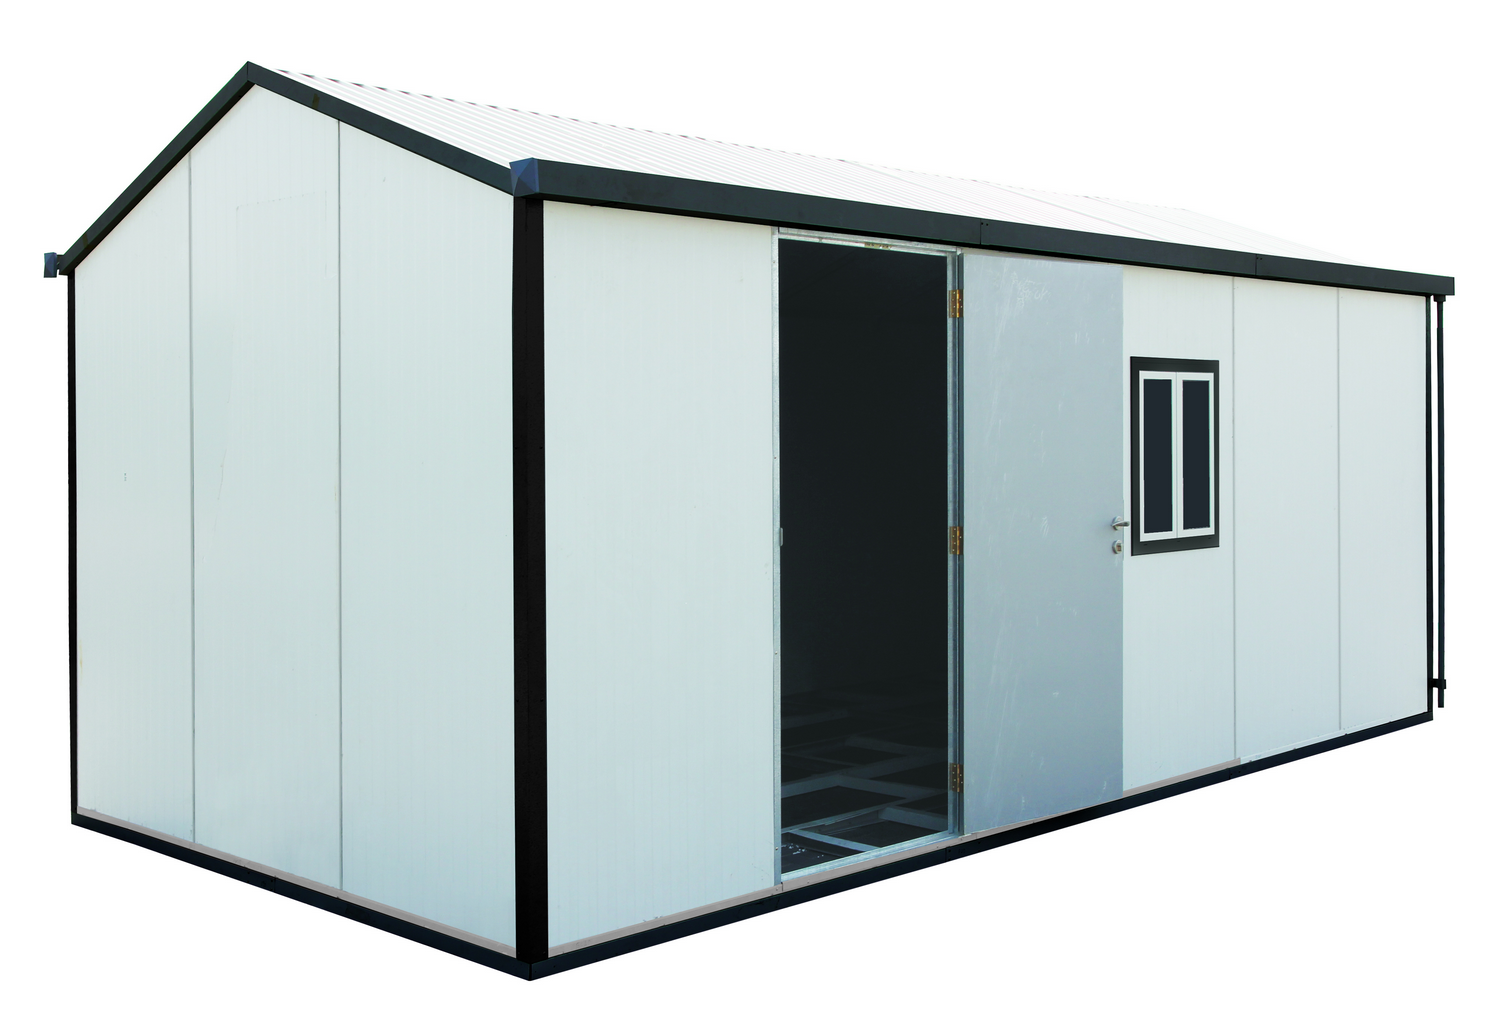 Duramax 34532 Gable Top Insulated Building 3' Extension